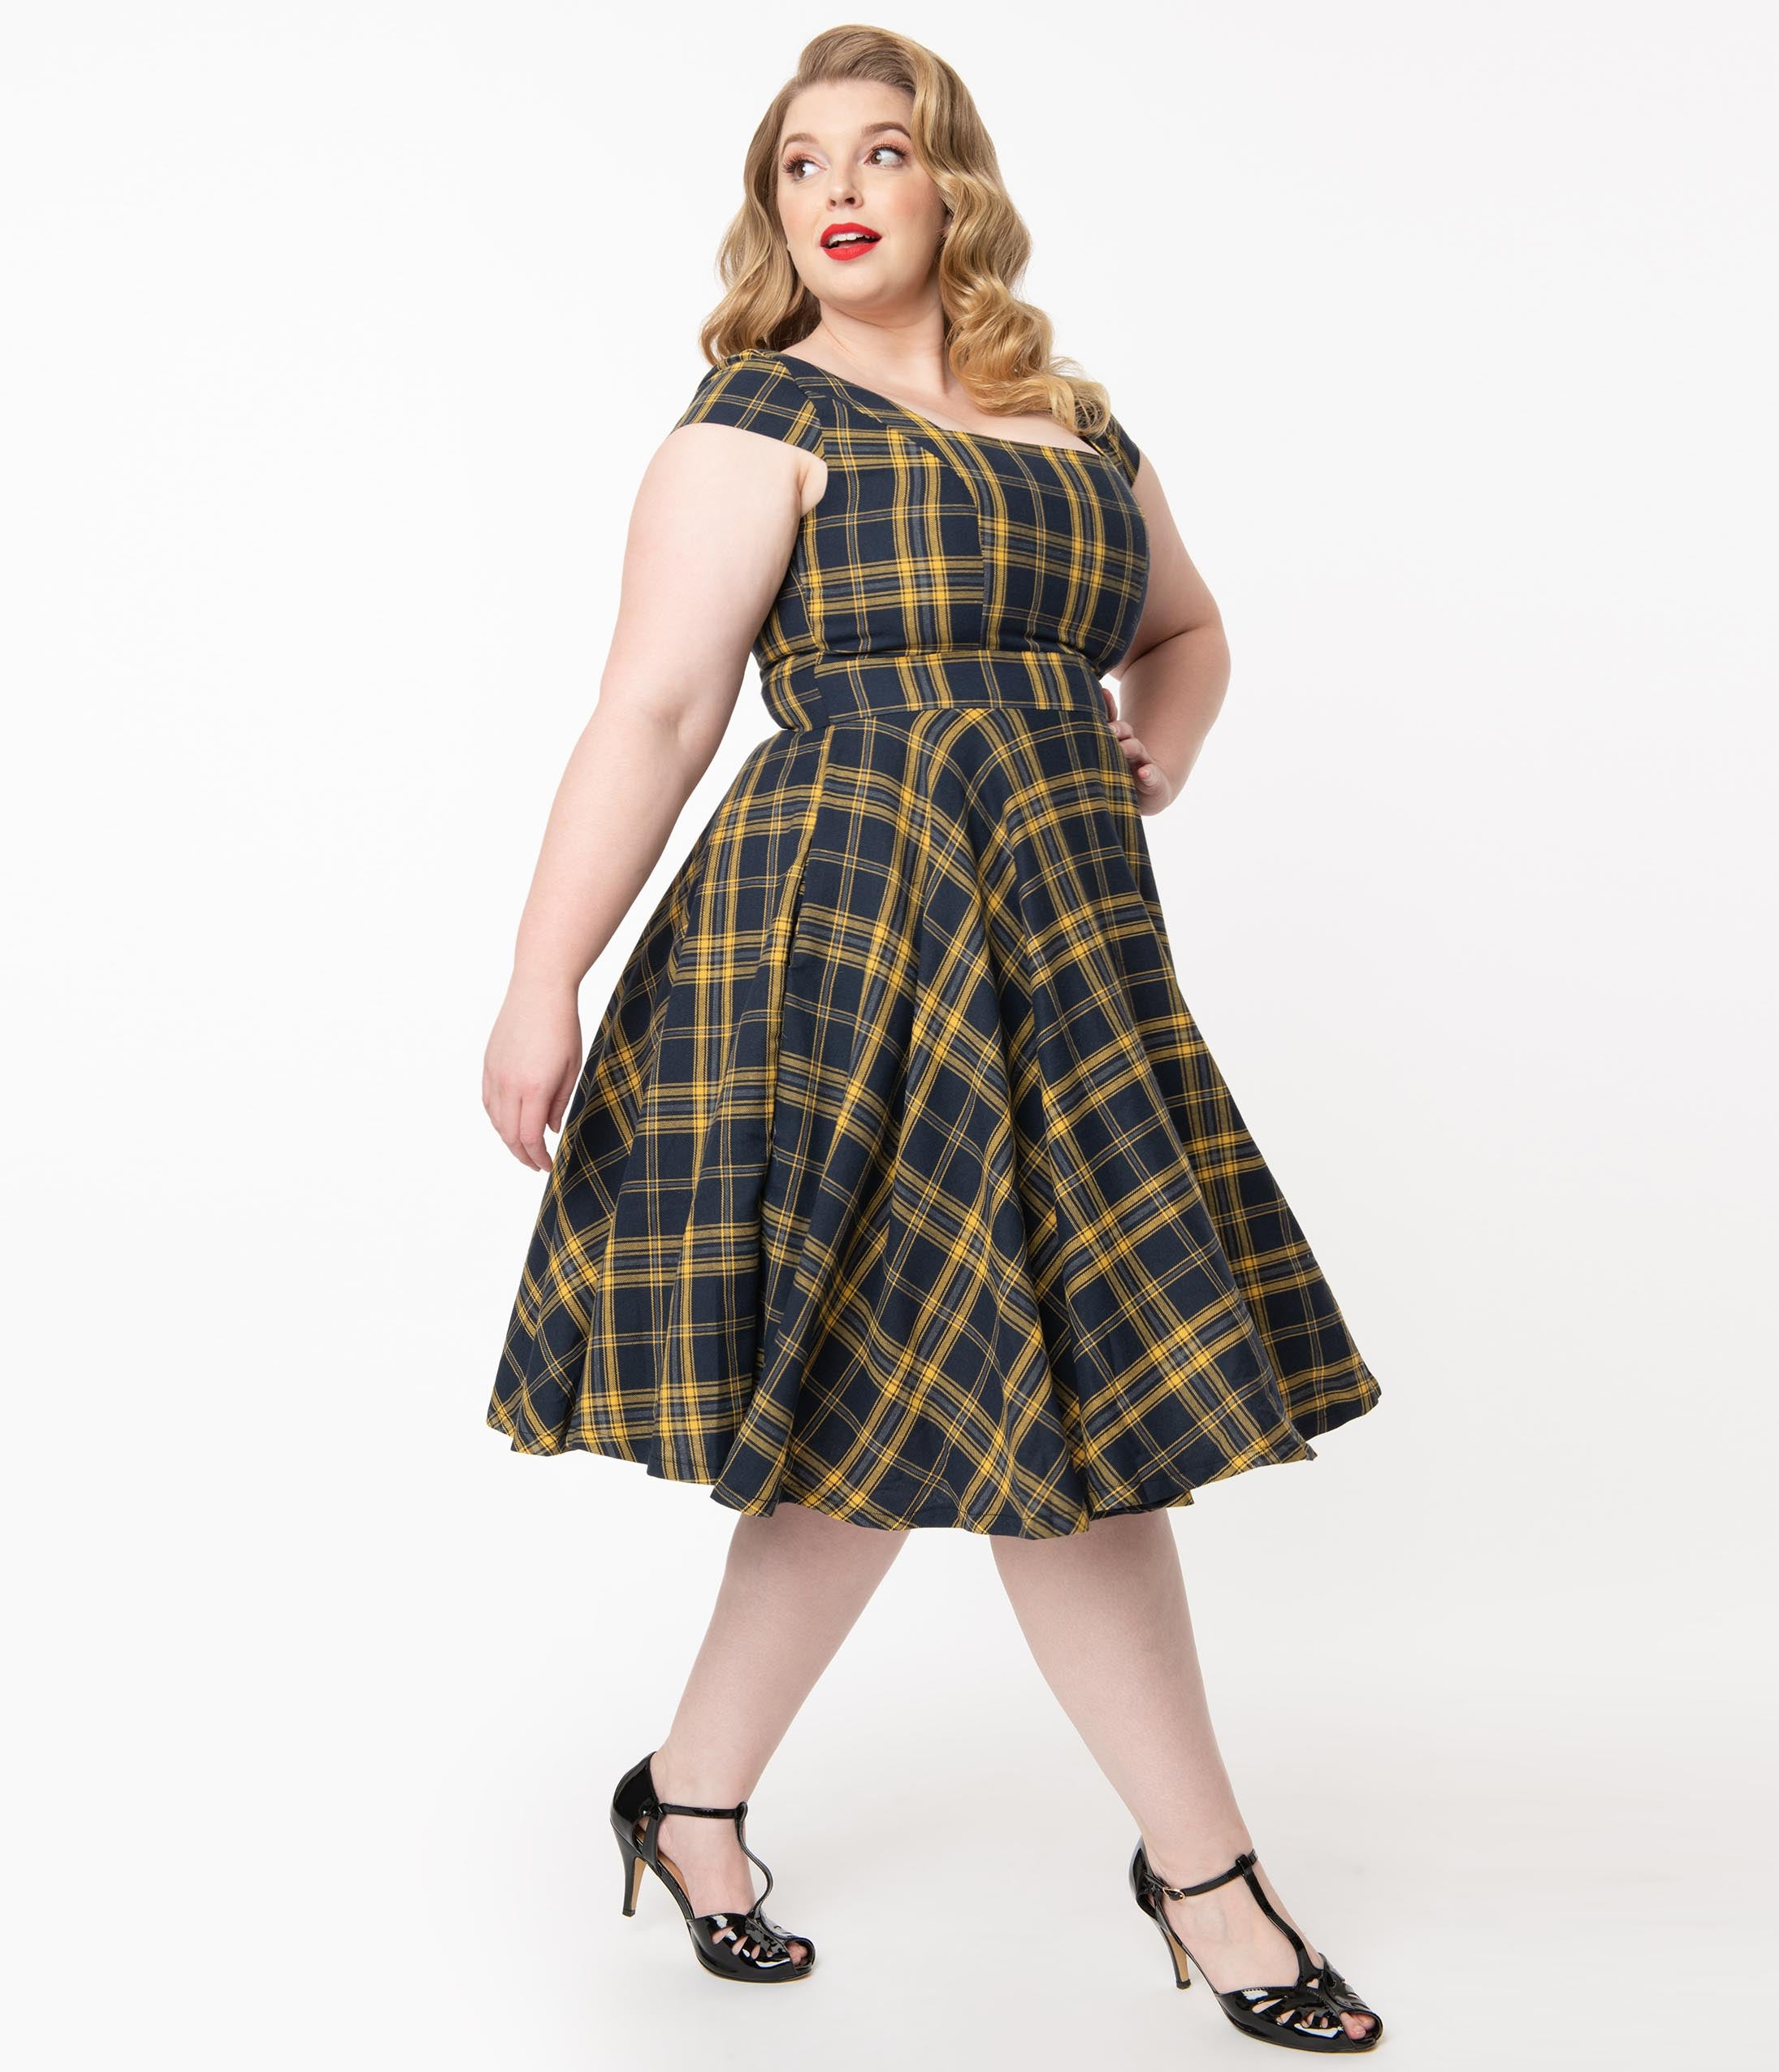 1950s Inspired Fashion: Recreate the Look Plus Size Vintage Style Navy  Yellow Plaid Anna Swing Dress $88.00 AT vintagedancer.com